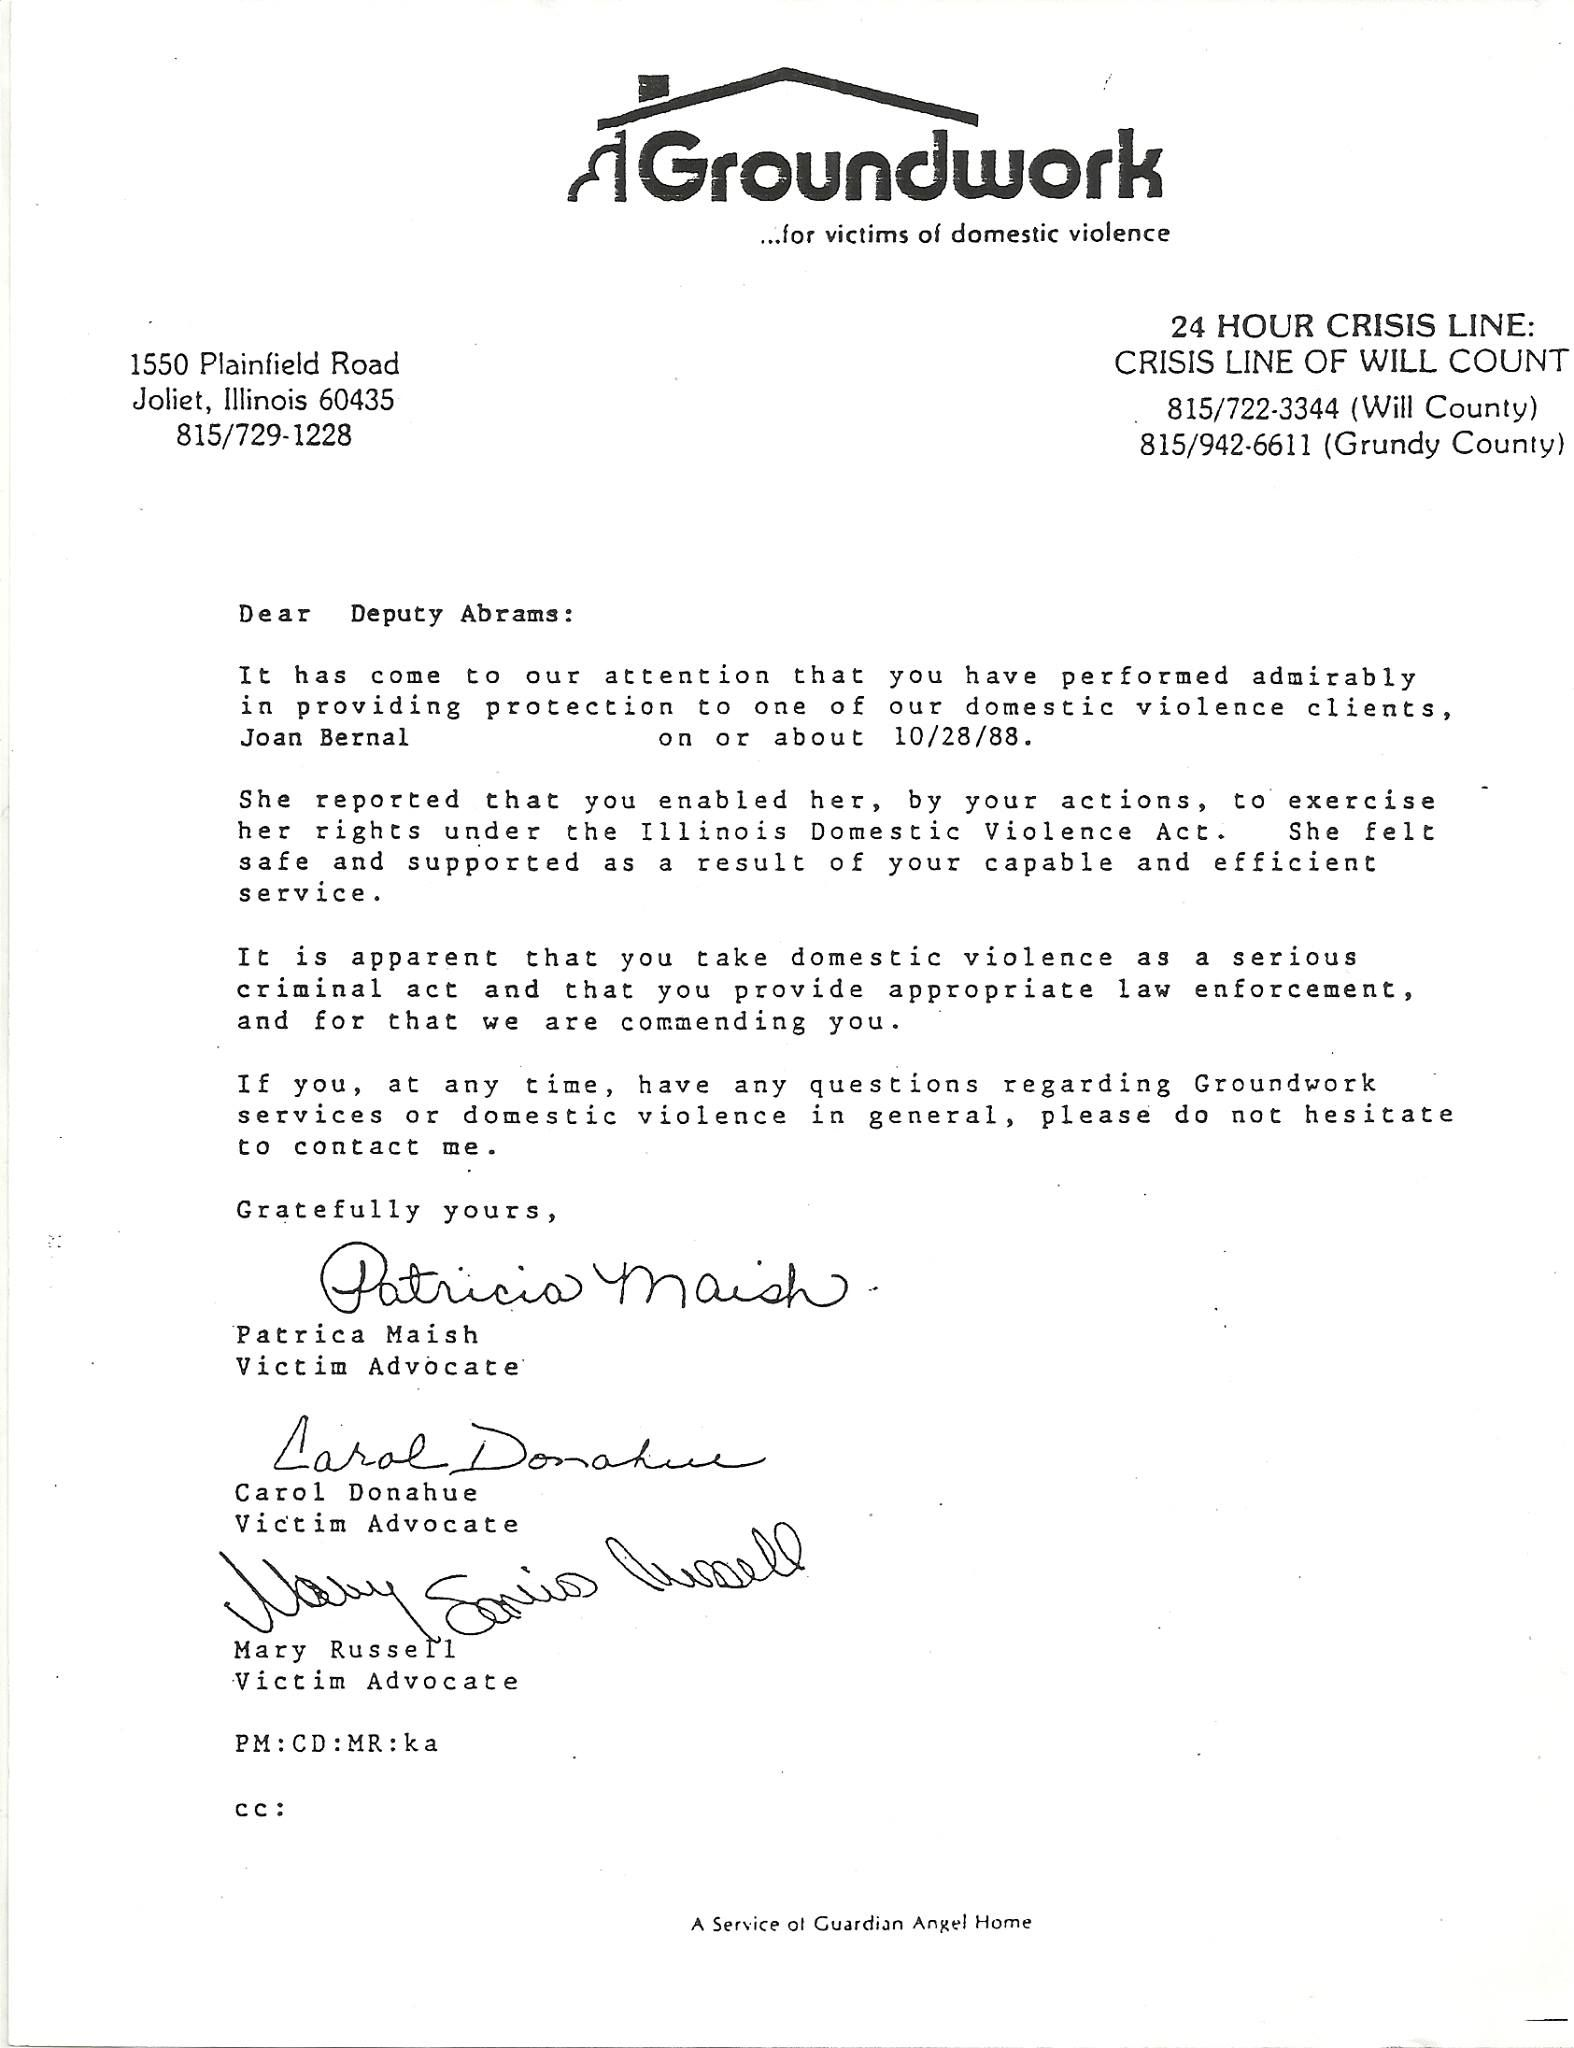 Letter Of Commendation From VictimS Advocates Patricia Maish And